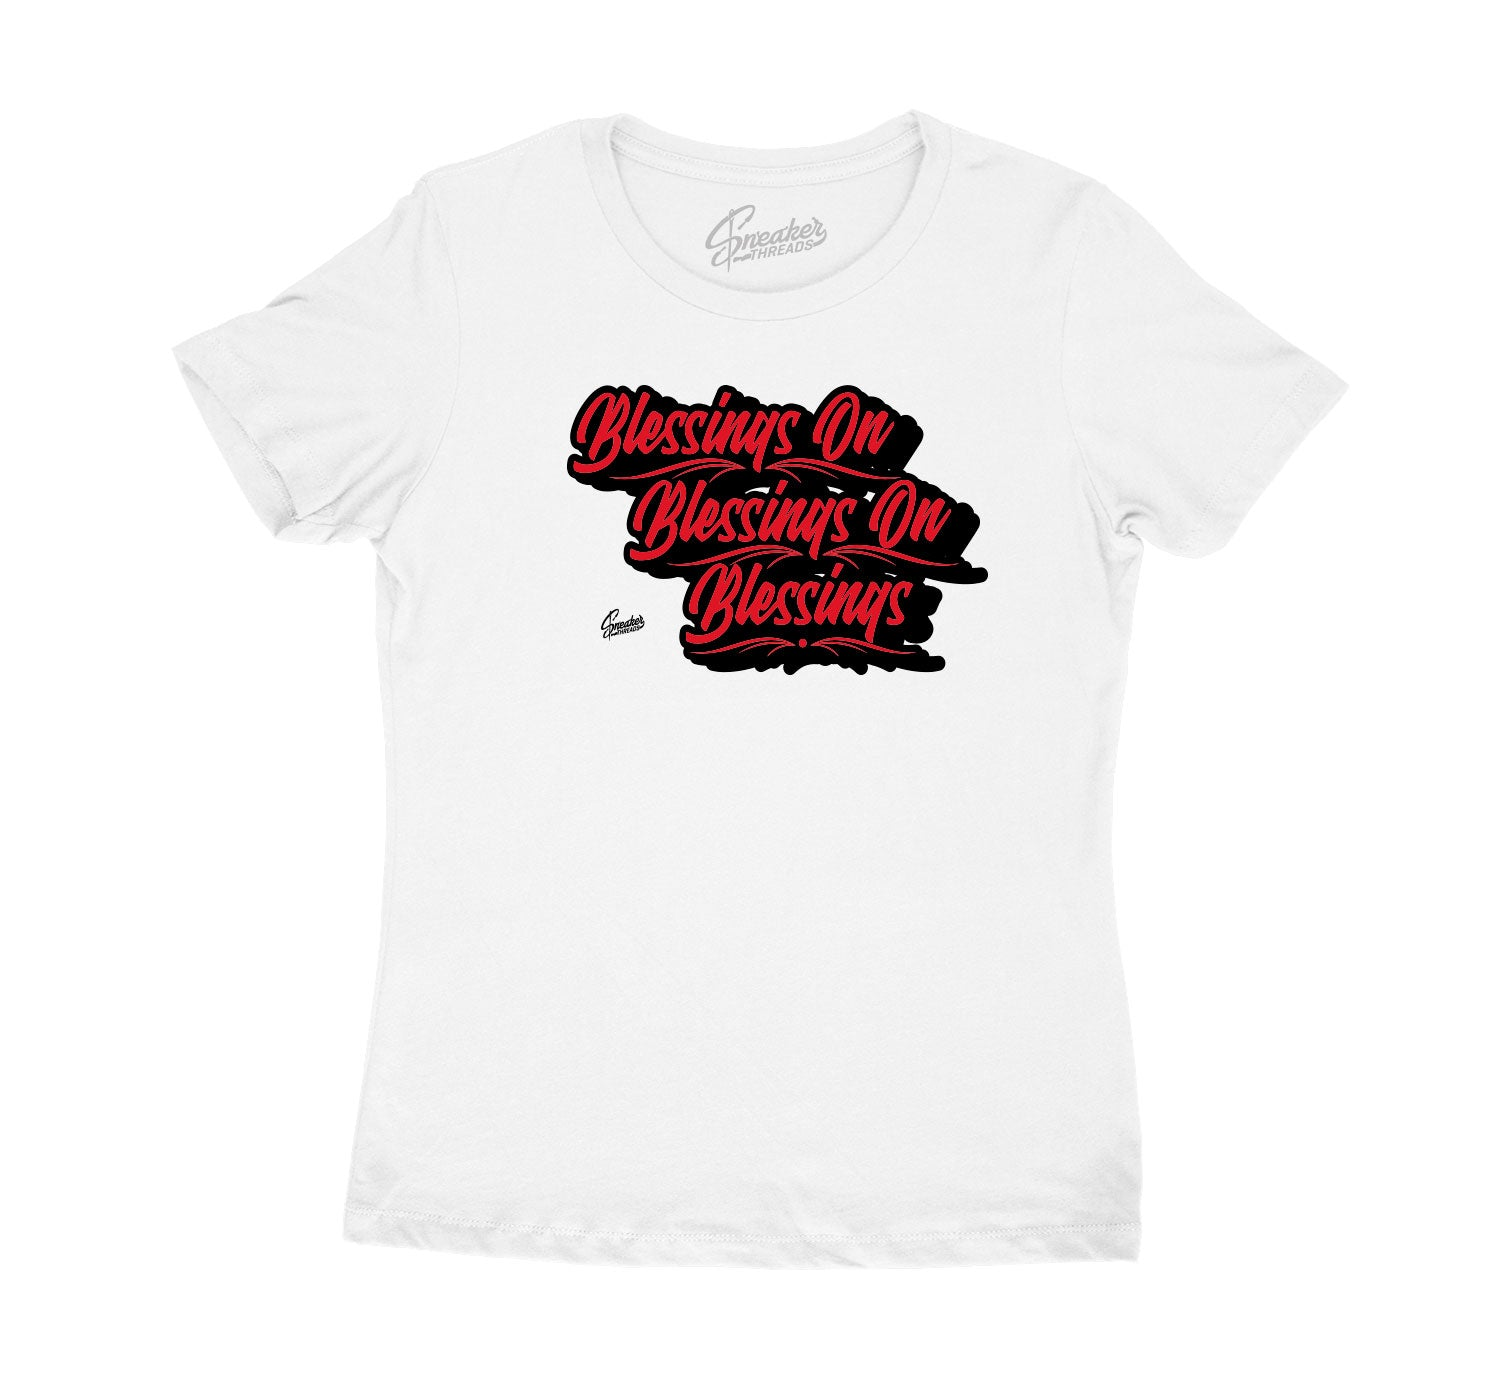 Retro Jordan 9 womens sneaker has match tees made for women